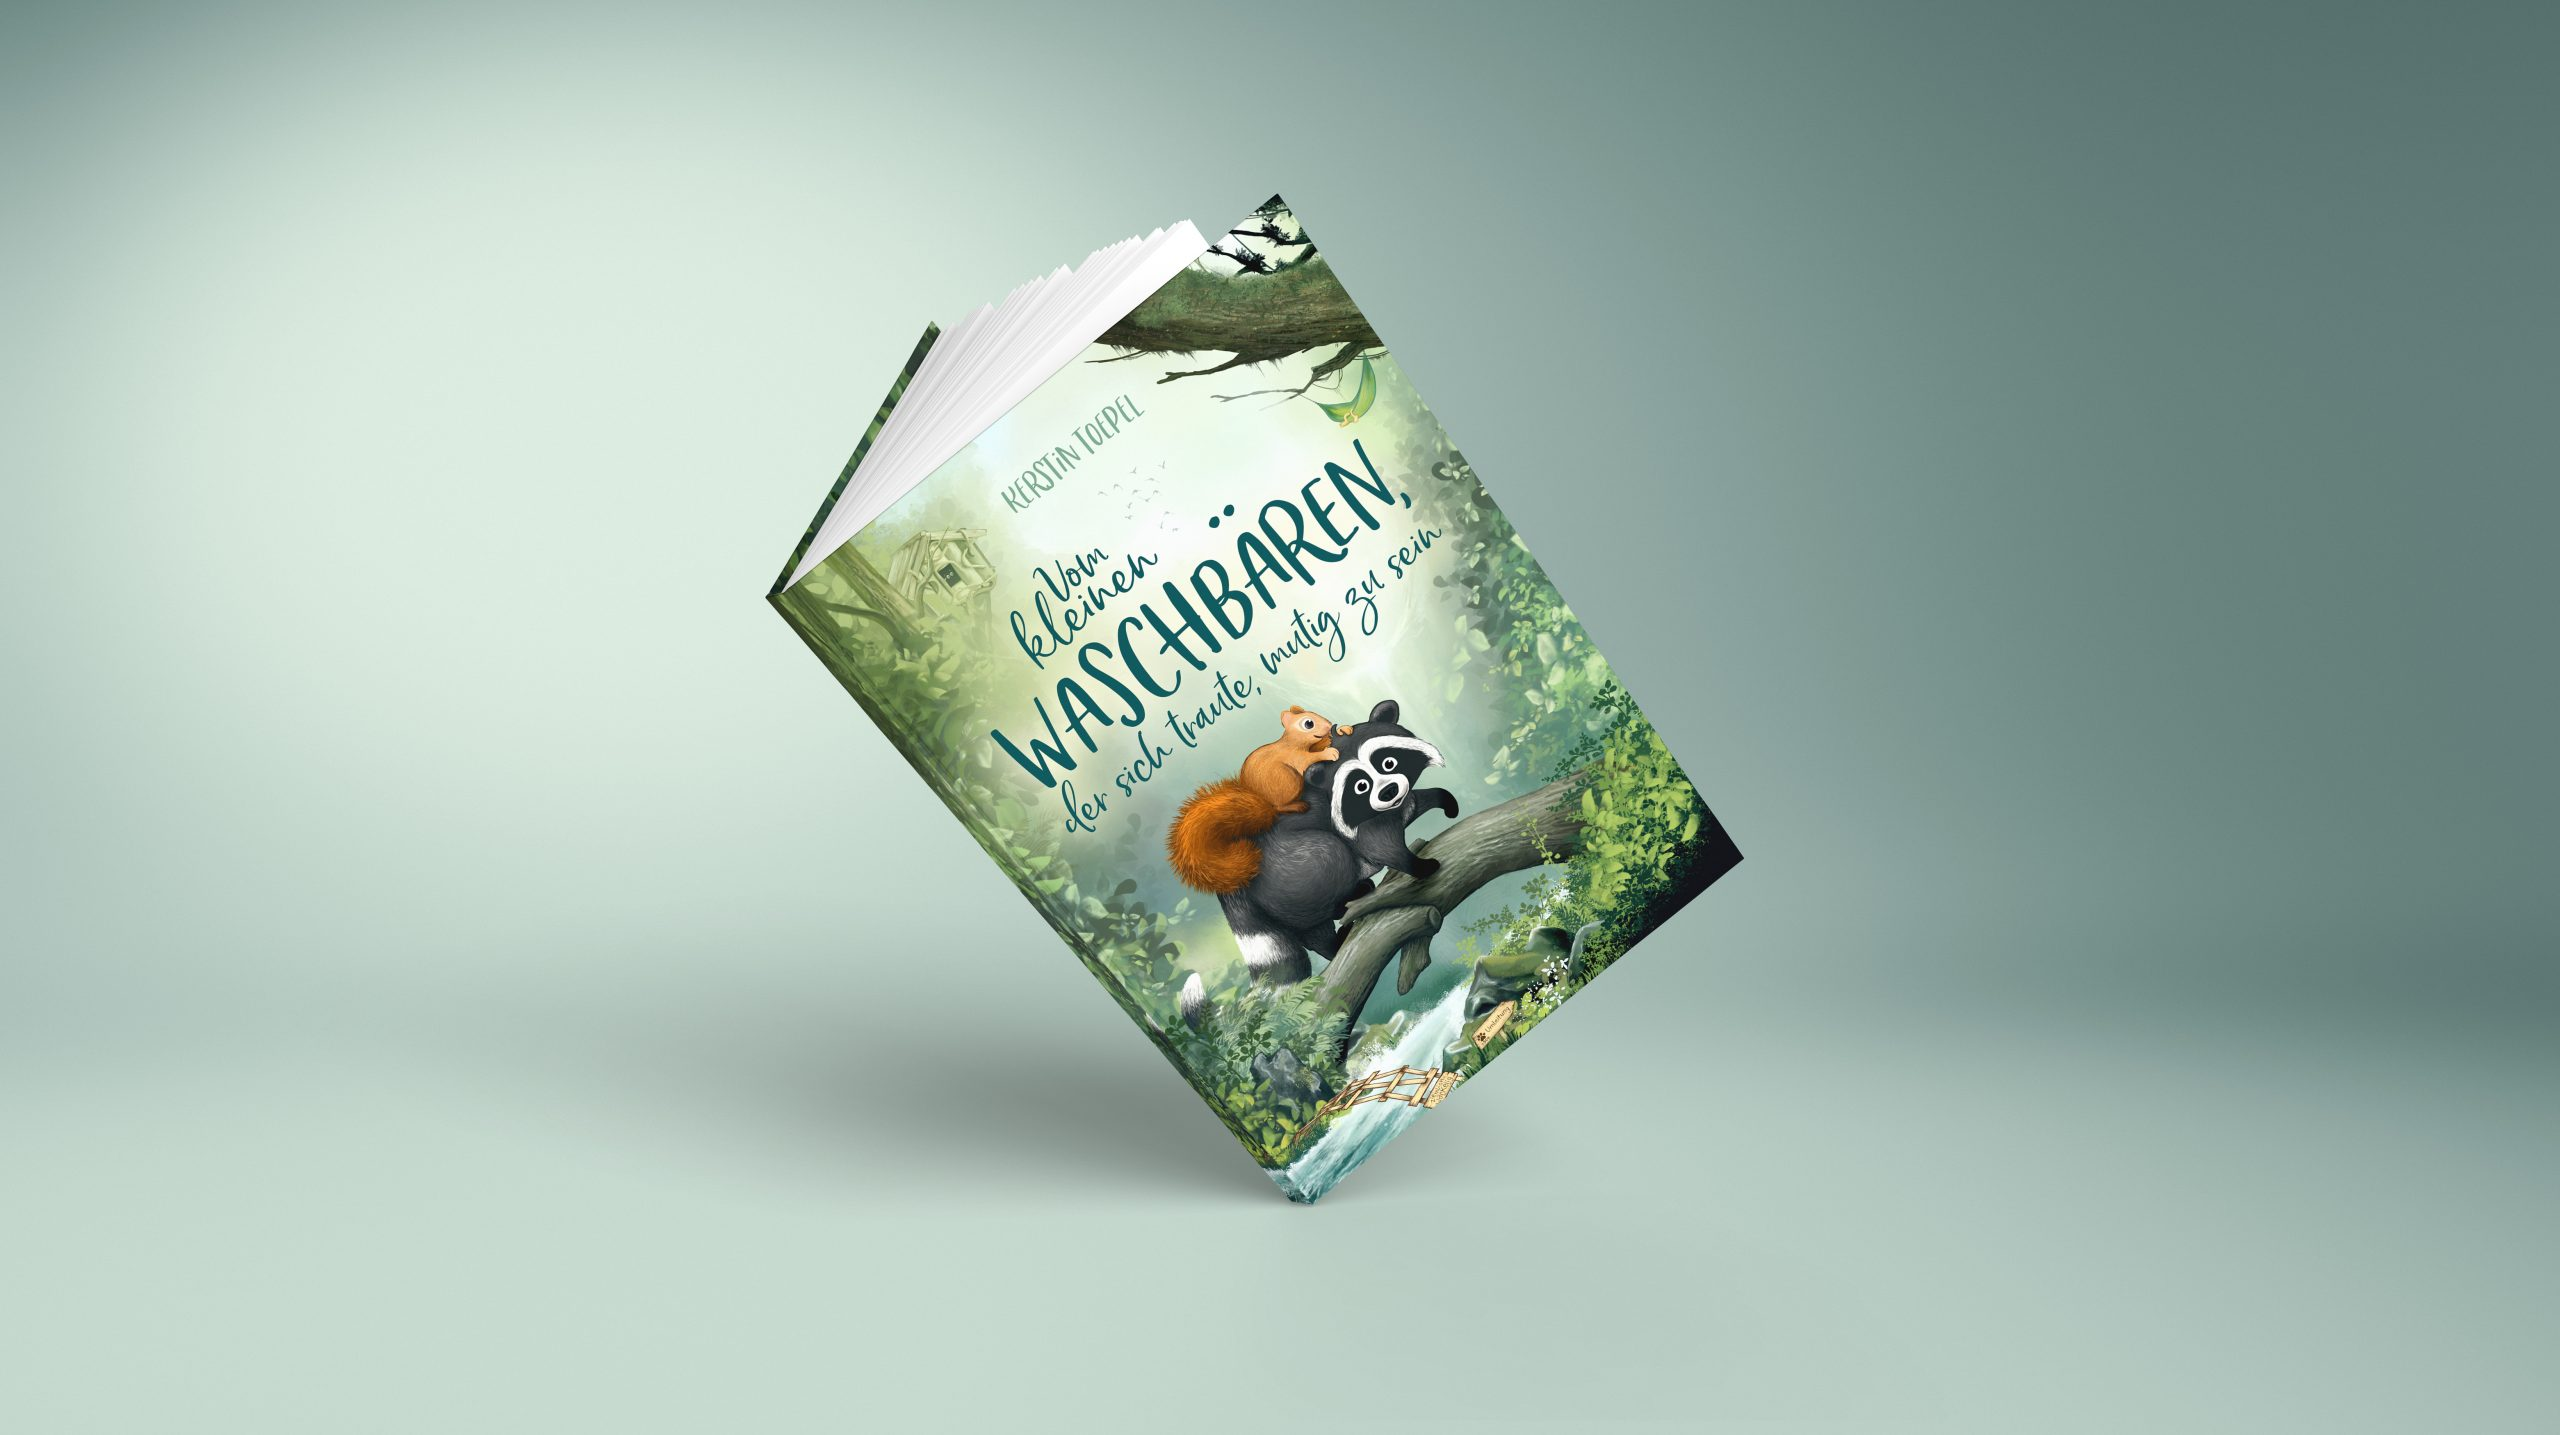 LY_Henry2_Cover_mockup